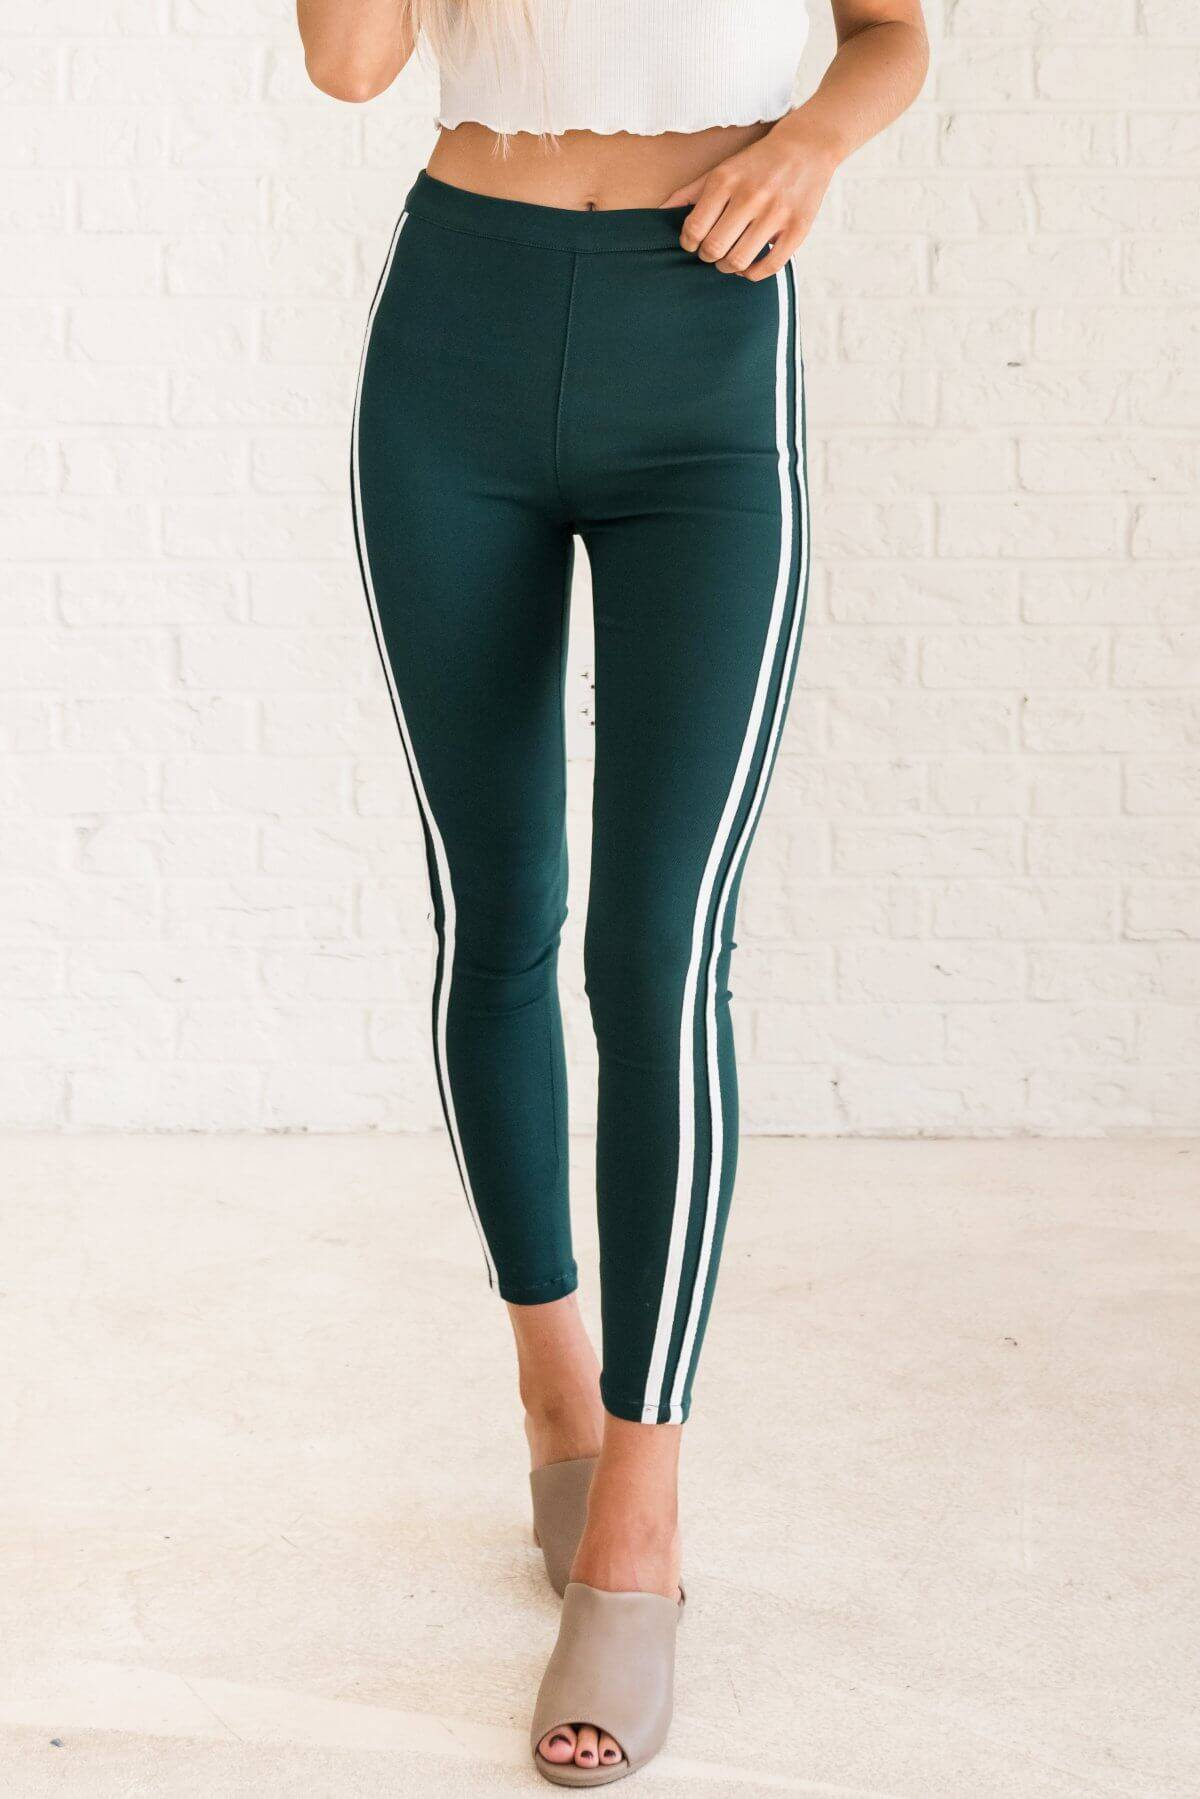 Teal Green Boutique Leggings with White Athletic Side Stripes